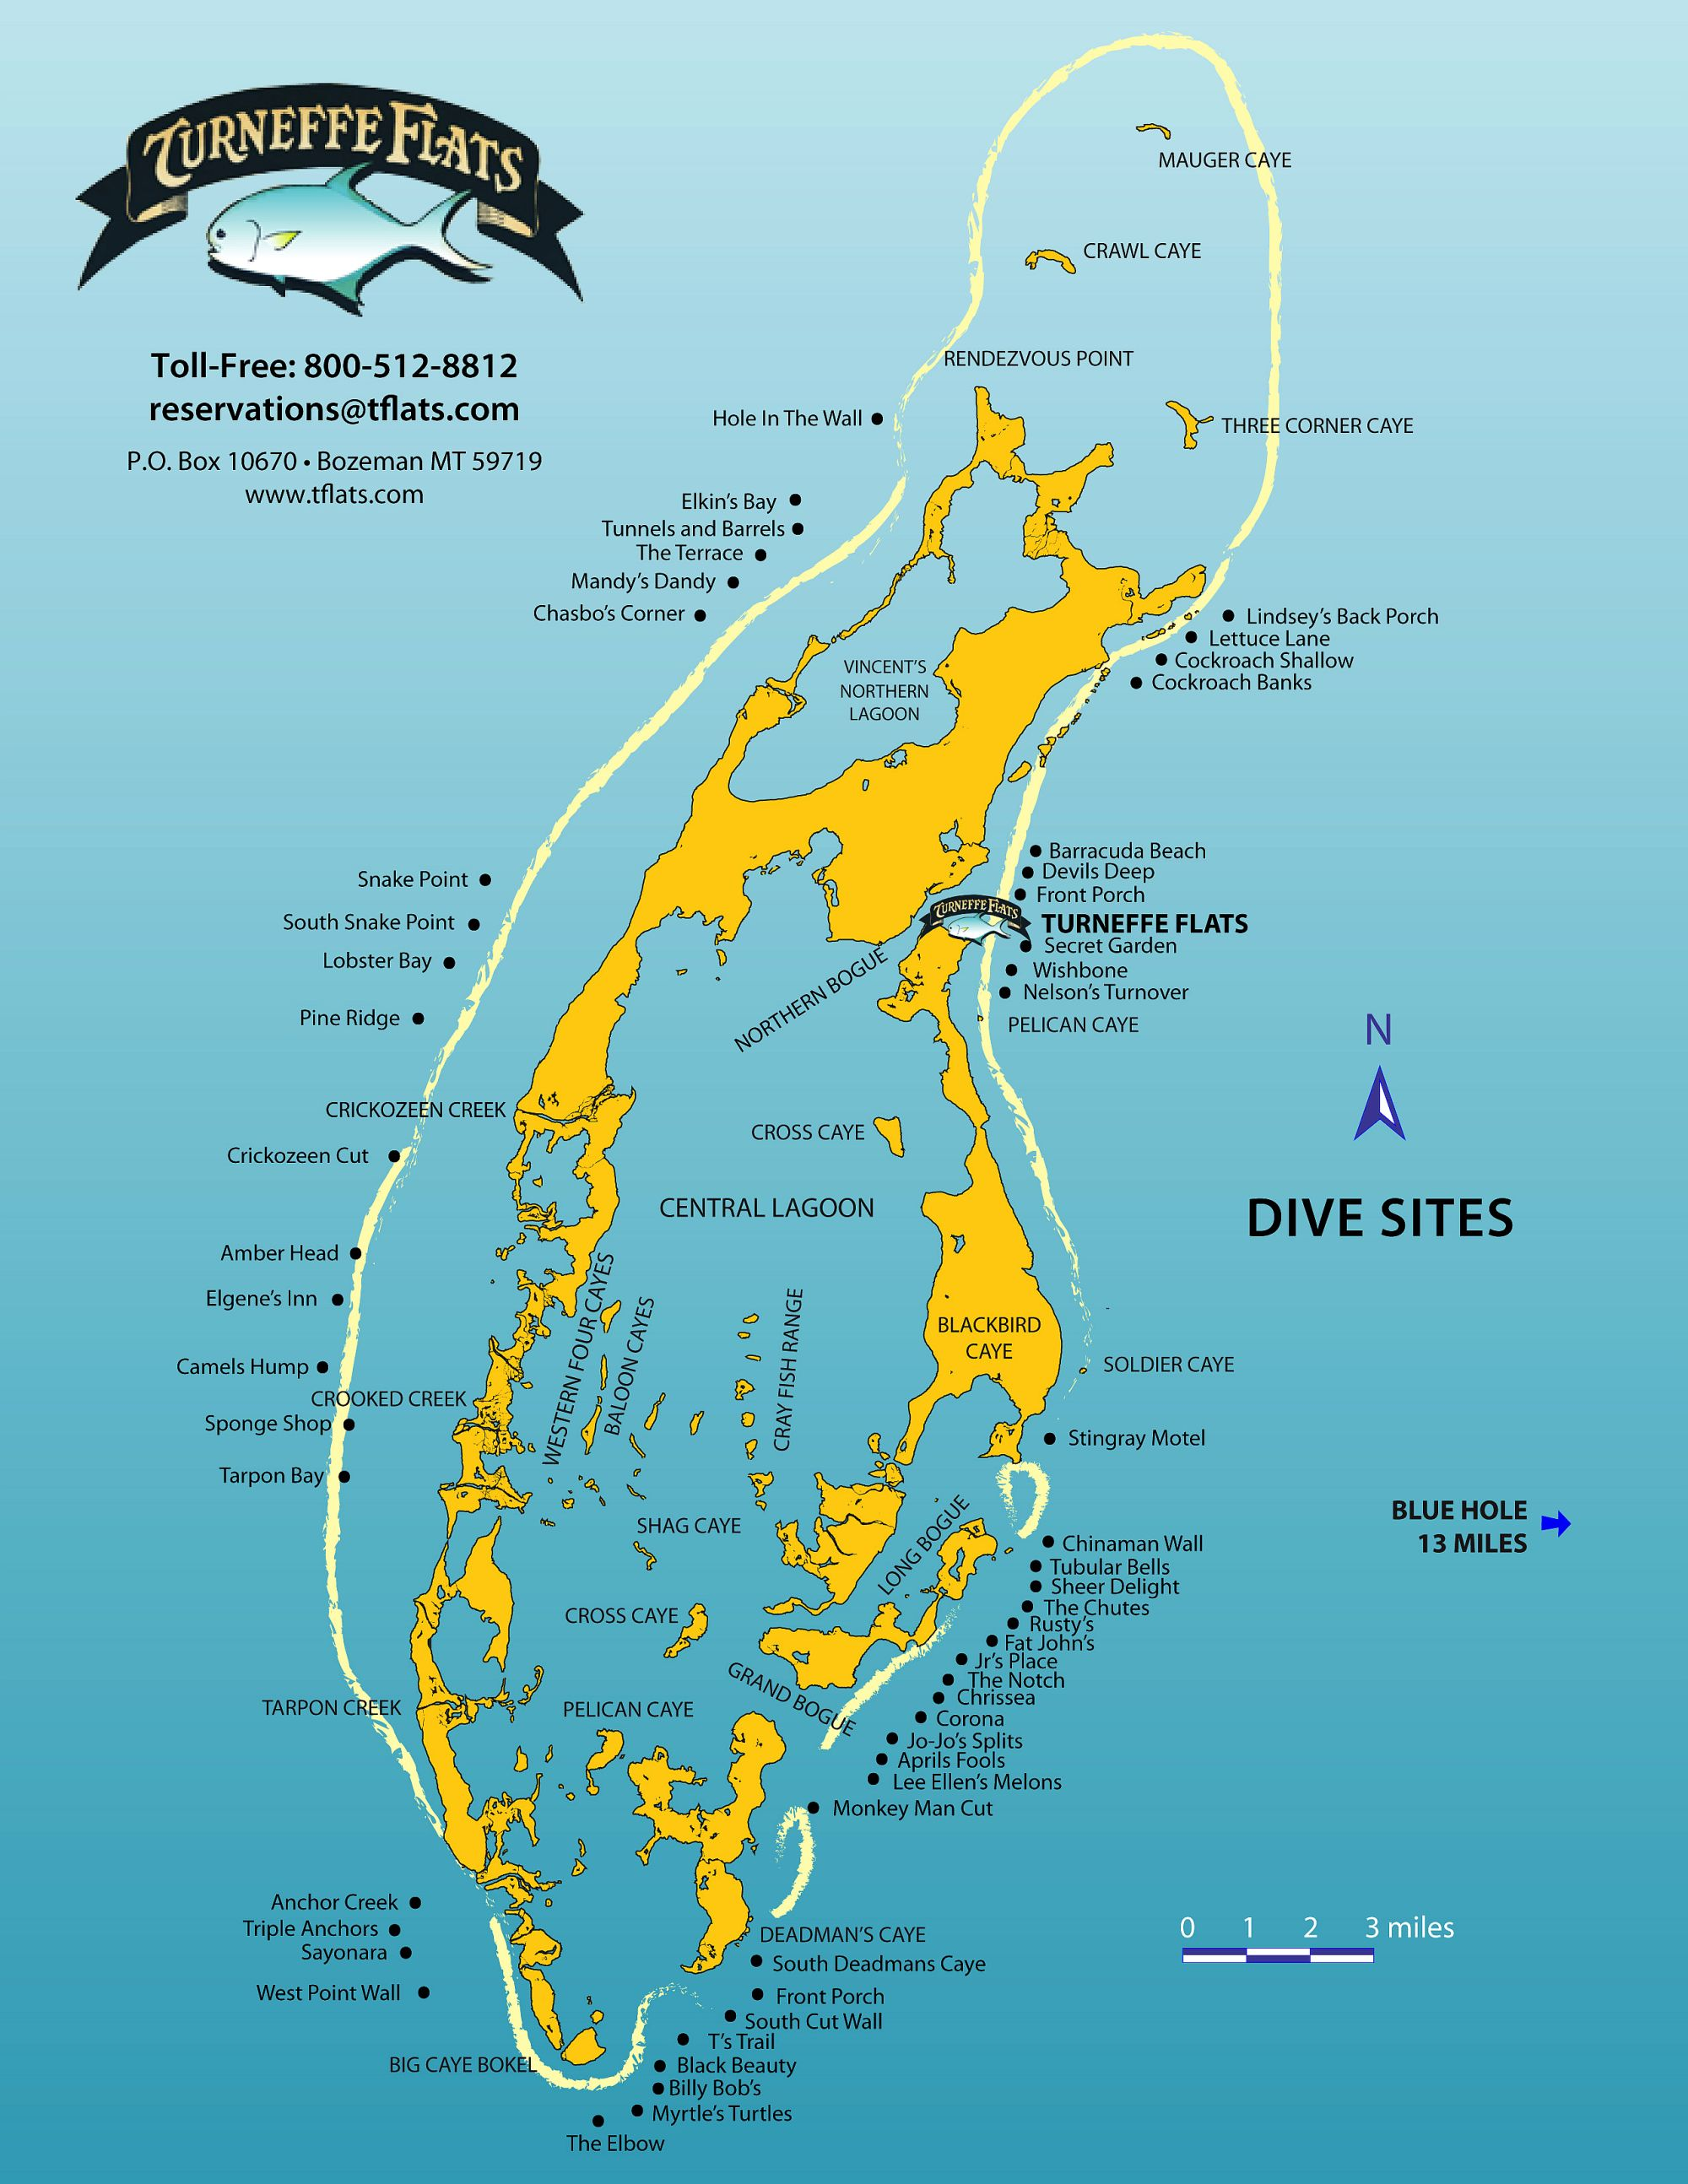 The best scuba diving sites in Belize are located on Turneffe Atoll